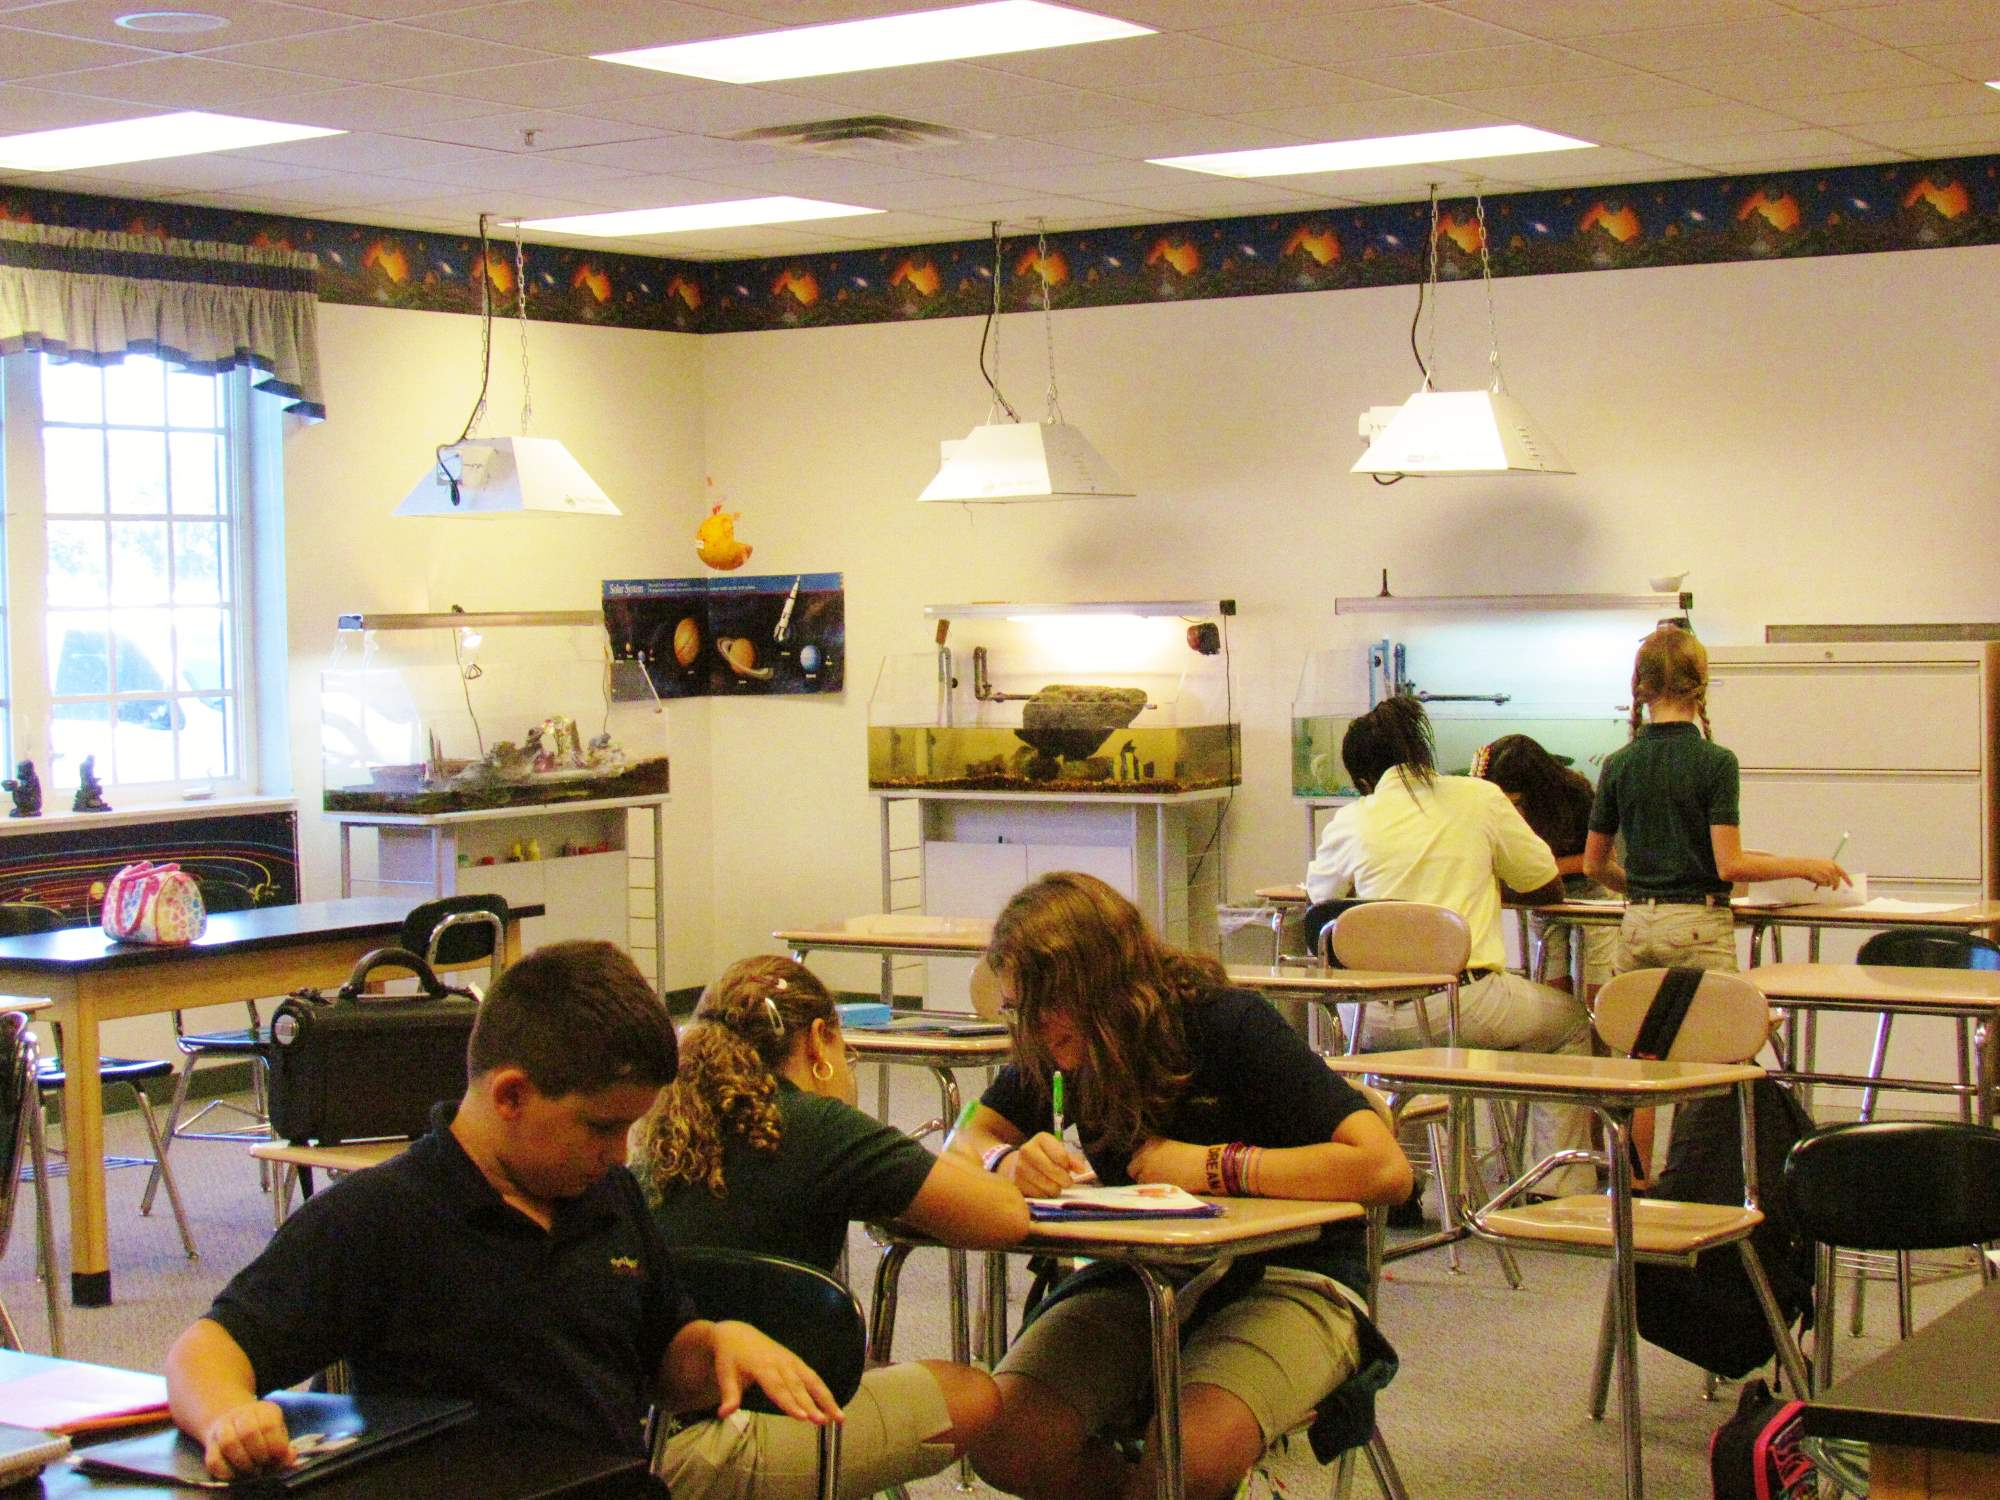 Middle School image 21 of 37